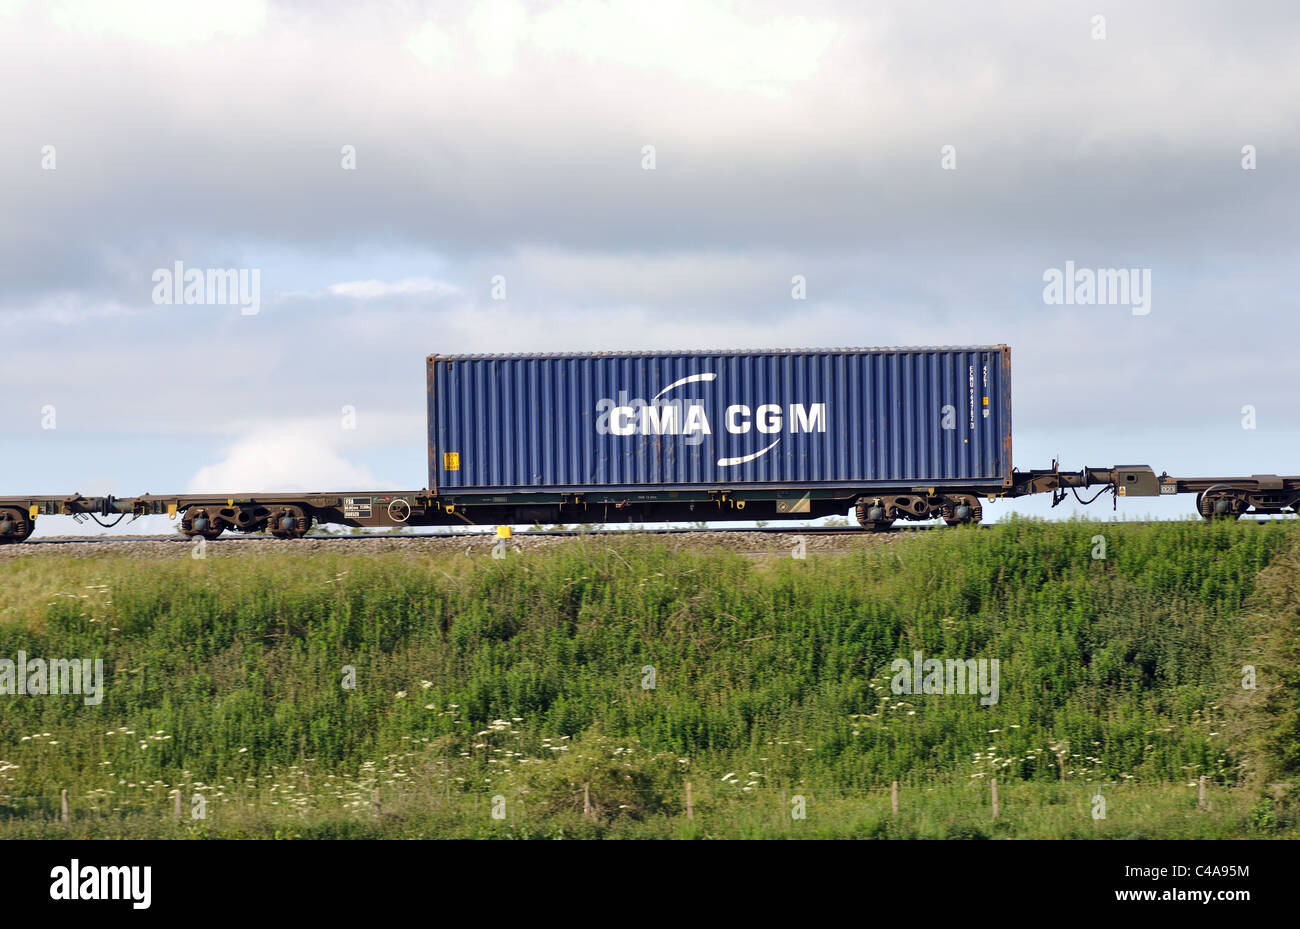 CMA CGM shipping container on train, UK - Stock Image